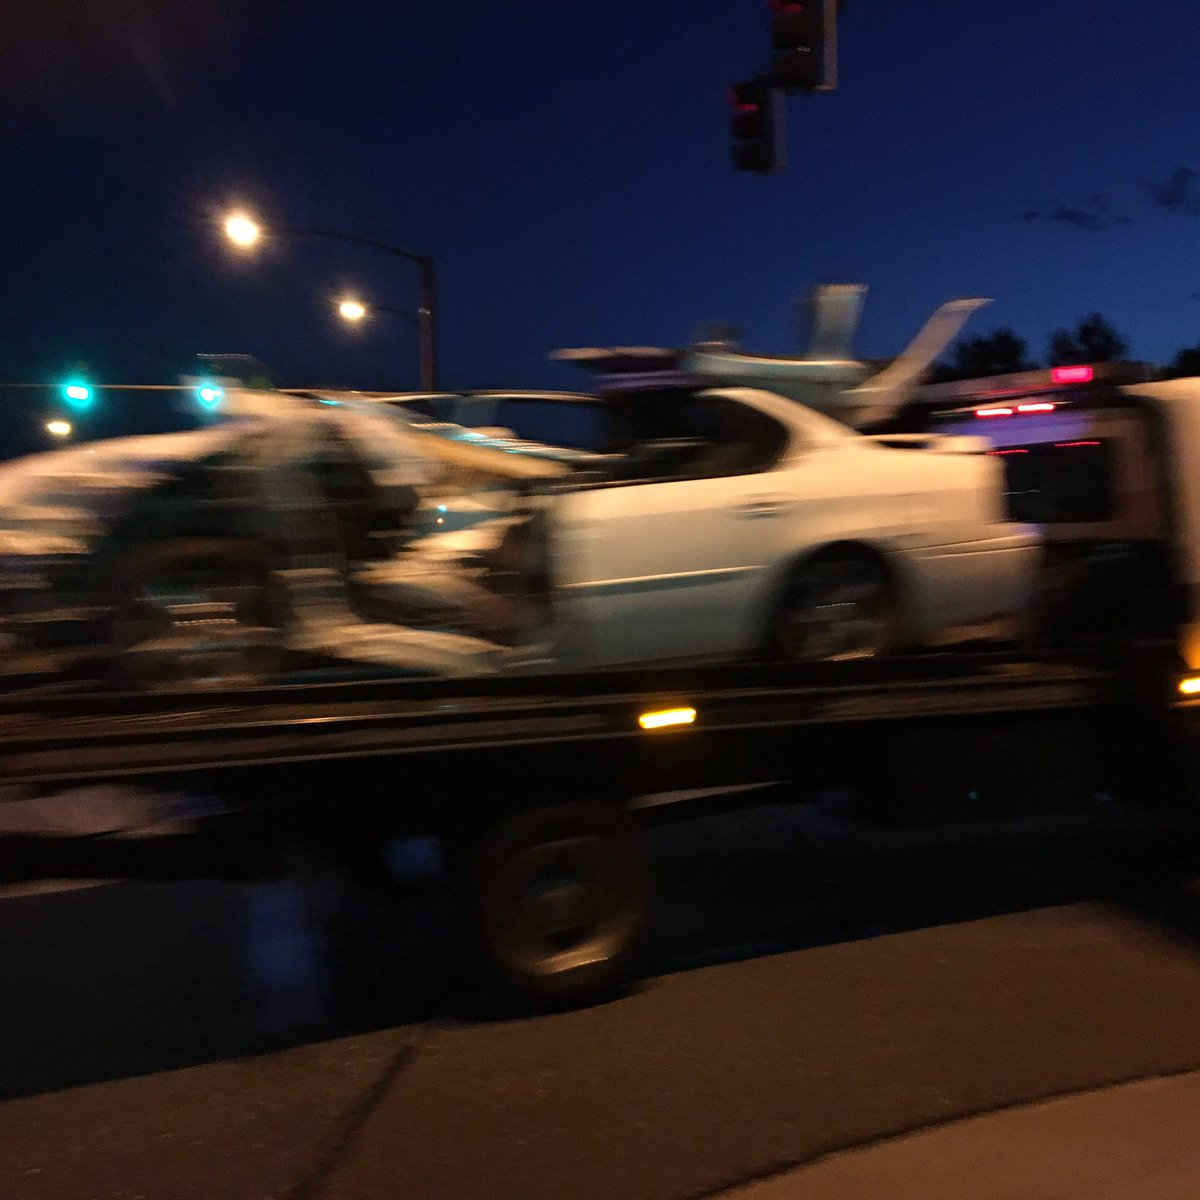 Washington re-opens at 128th-in Thornton-after alleged hit-&-run driver chase ends in crash!@GoodDayCO @ch2daybreak